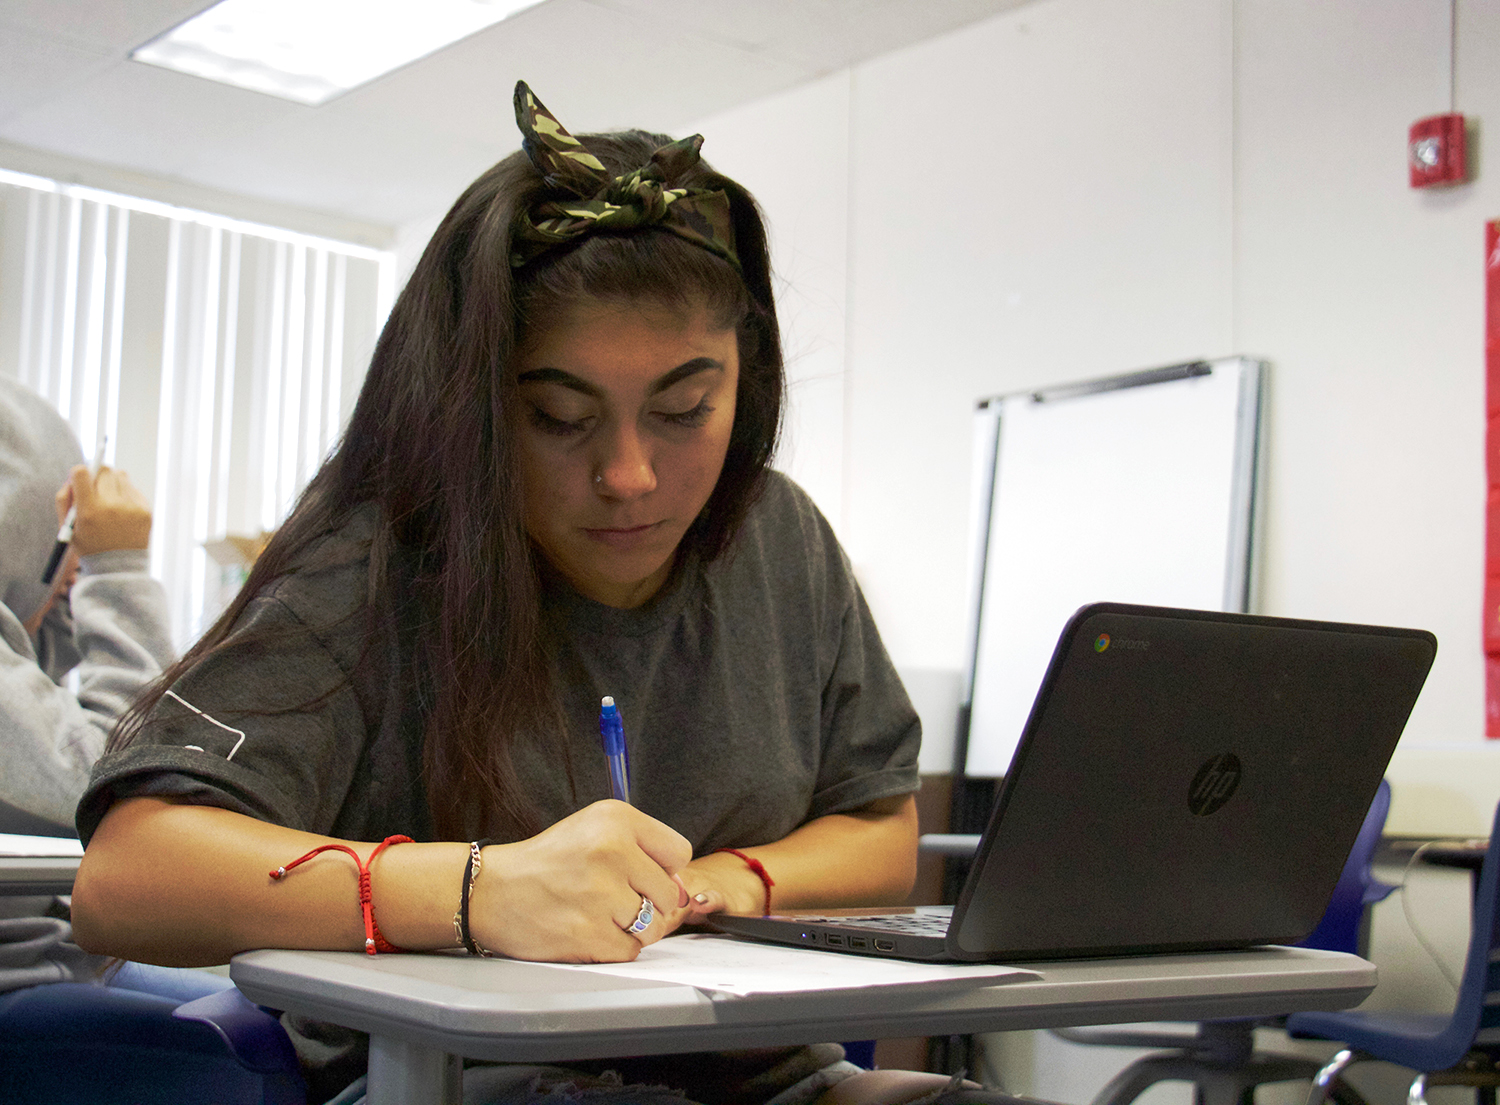 Senior Cristal Acevedo Erostico works on a math problem in Essential Math Concepts. The individually paced course, designed to prepare students for the placement exams required by junior colleges, also incorporates lessons on resiliency and financial literacy into its curriculum. Katrina Arsky.